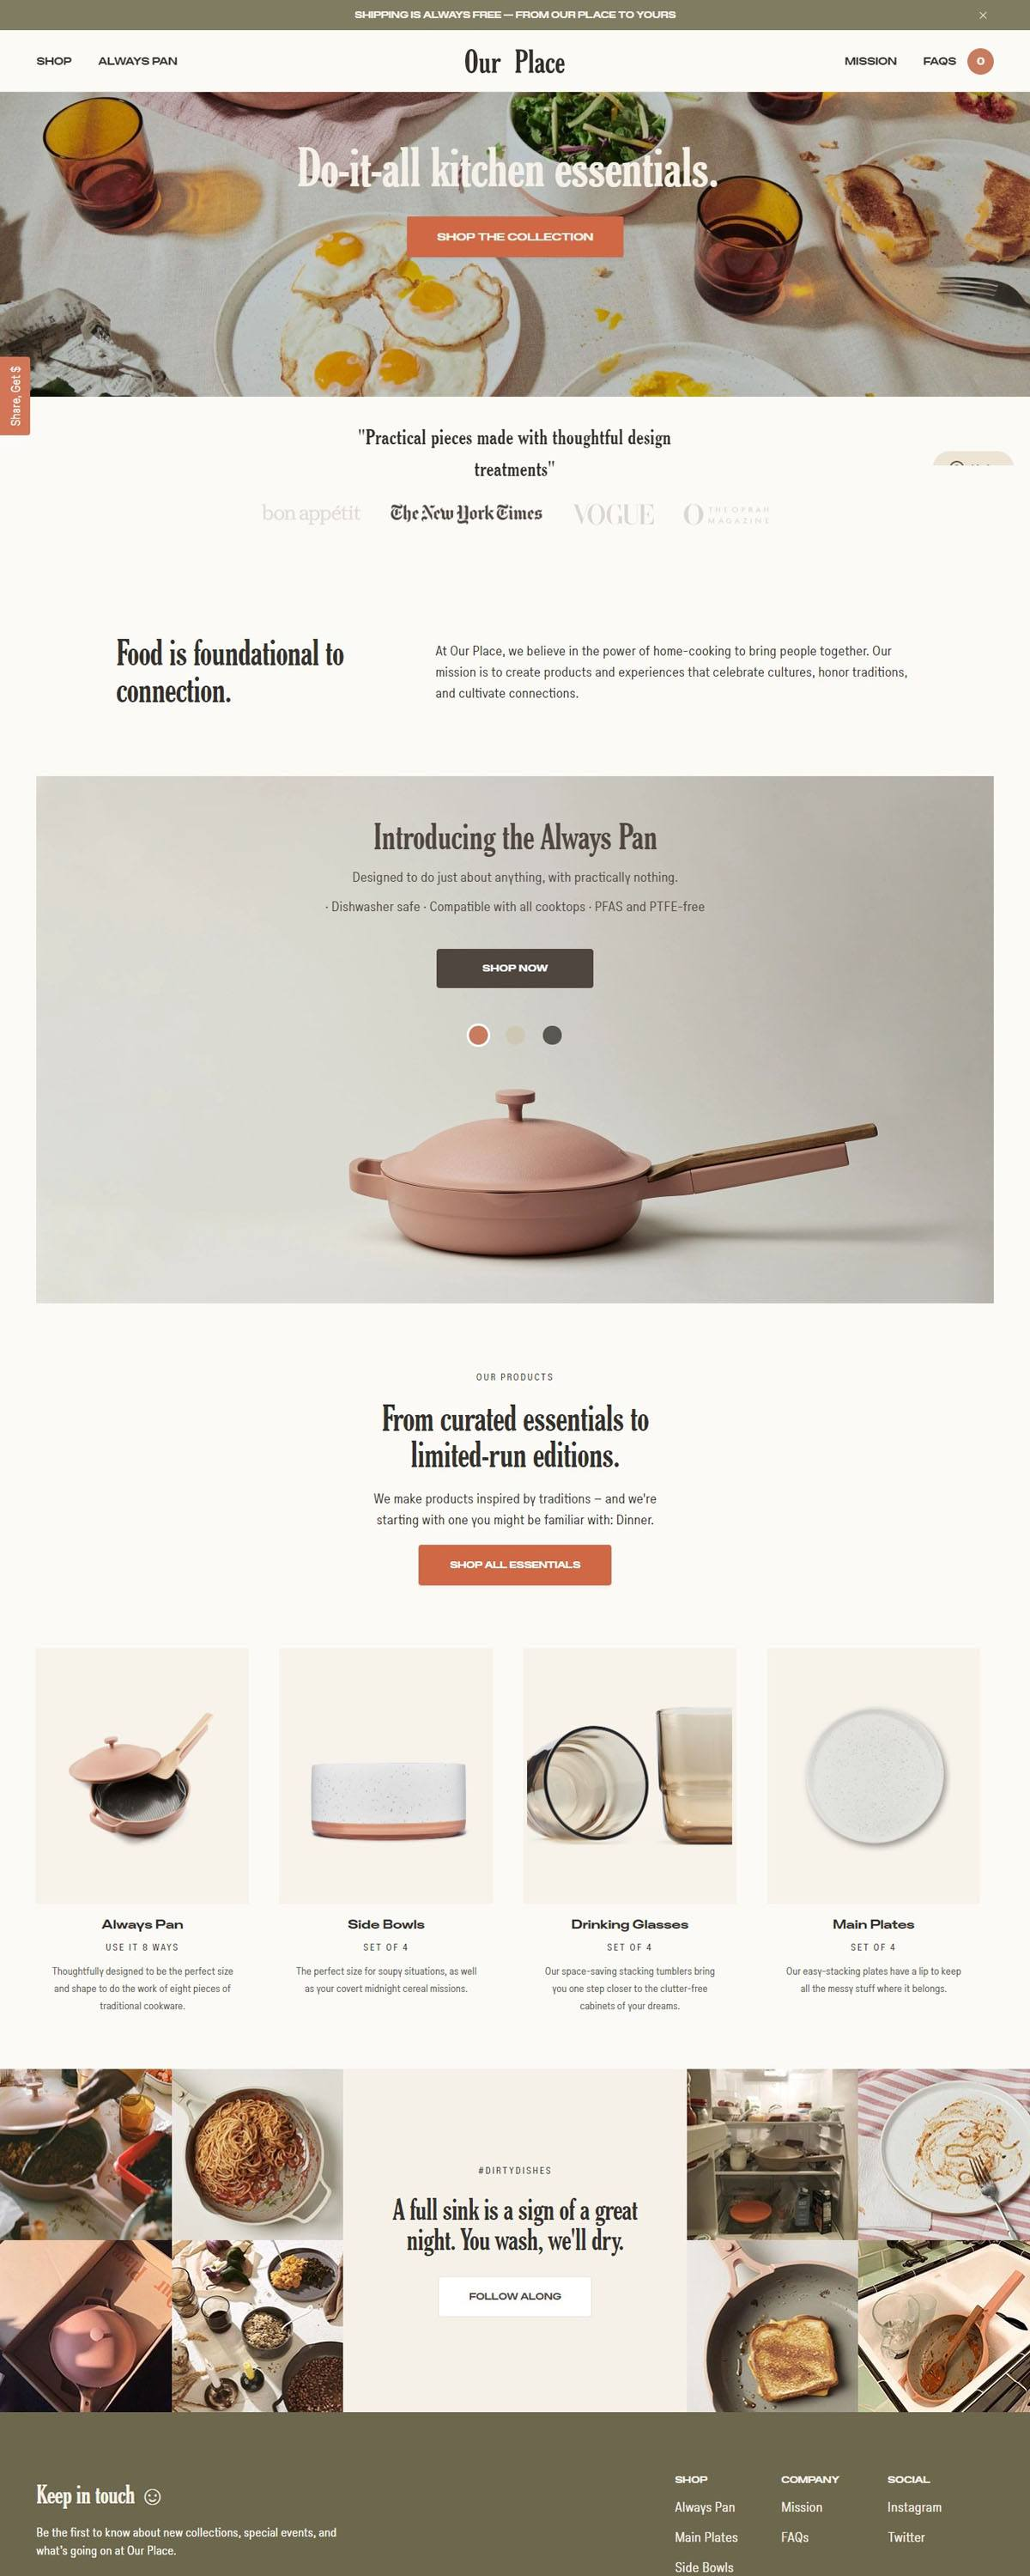 eCommerce website: Our Place